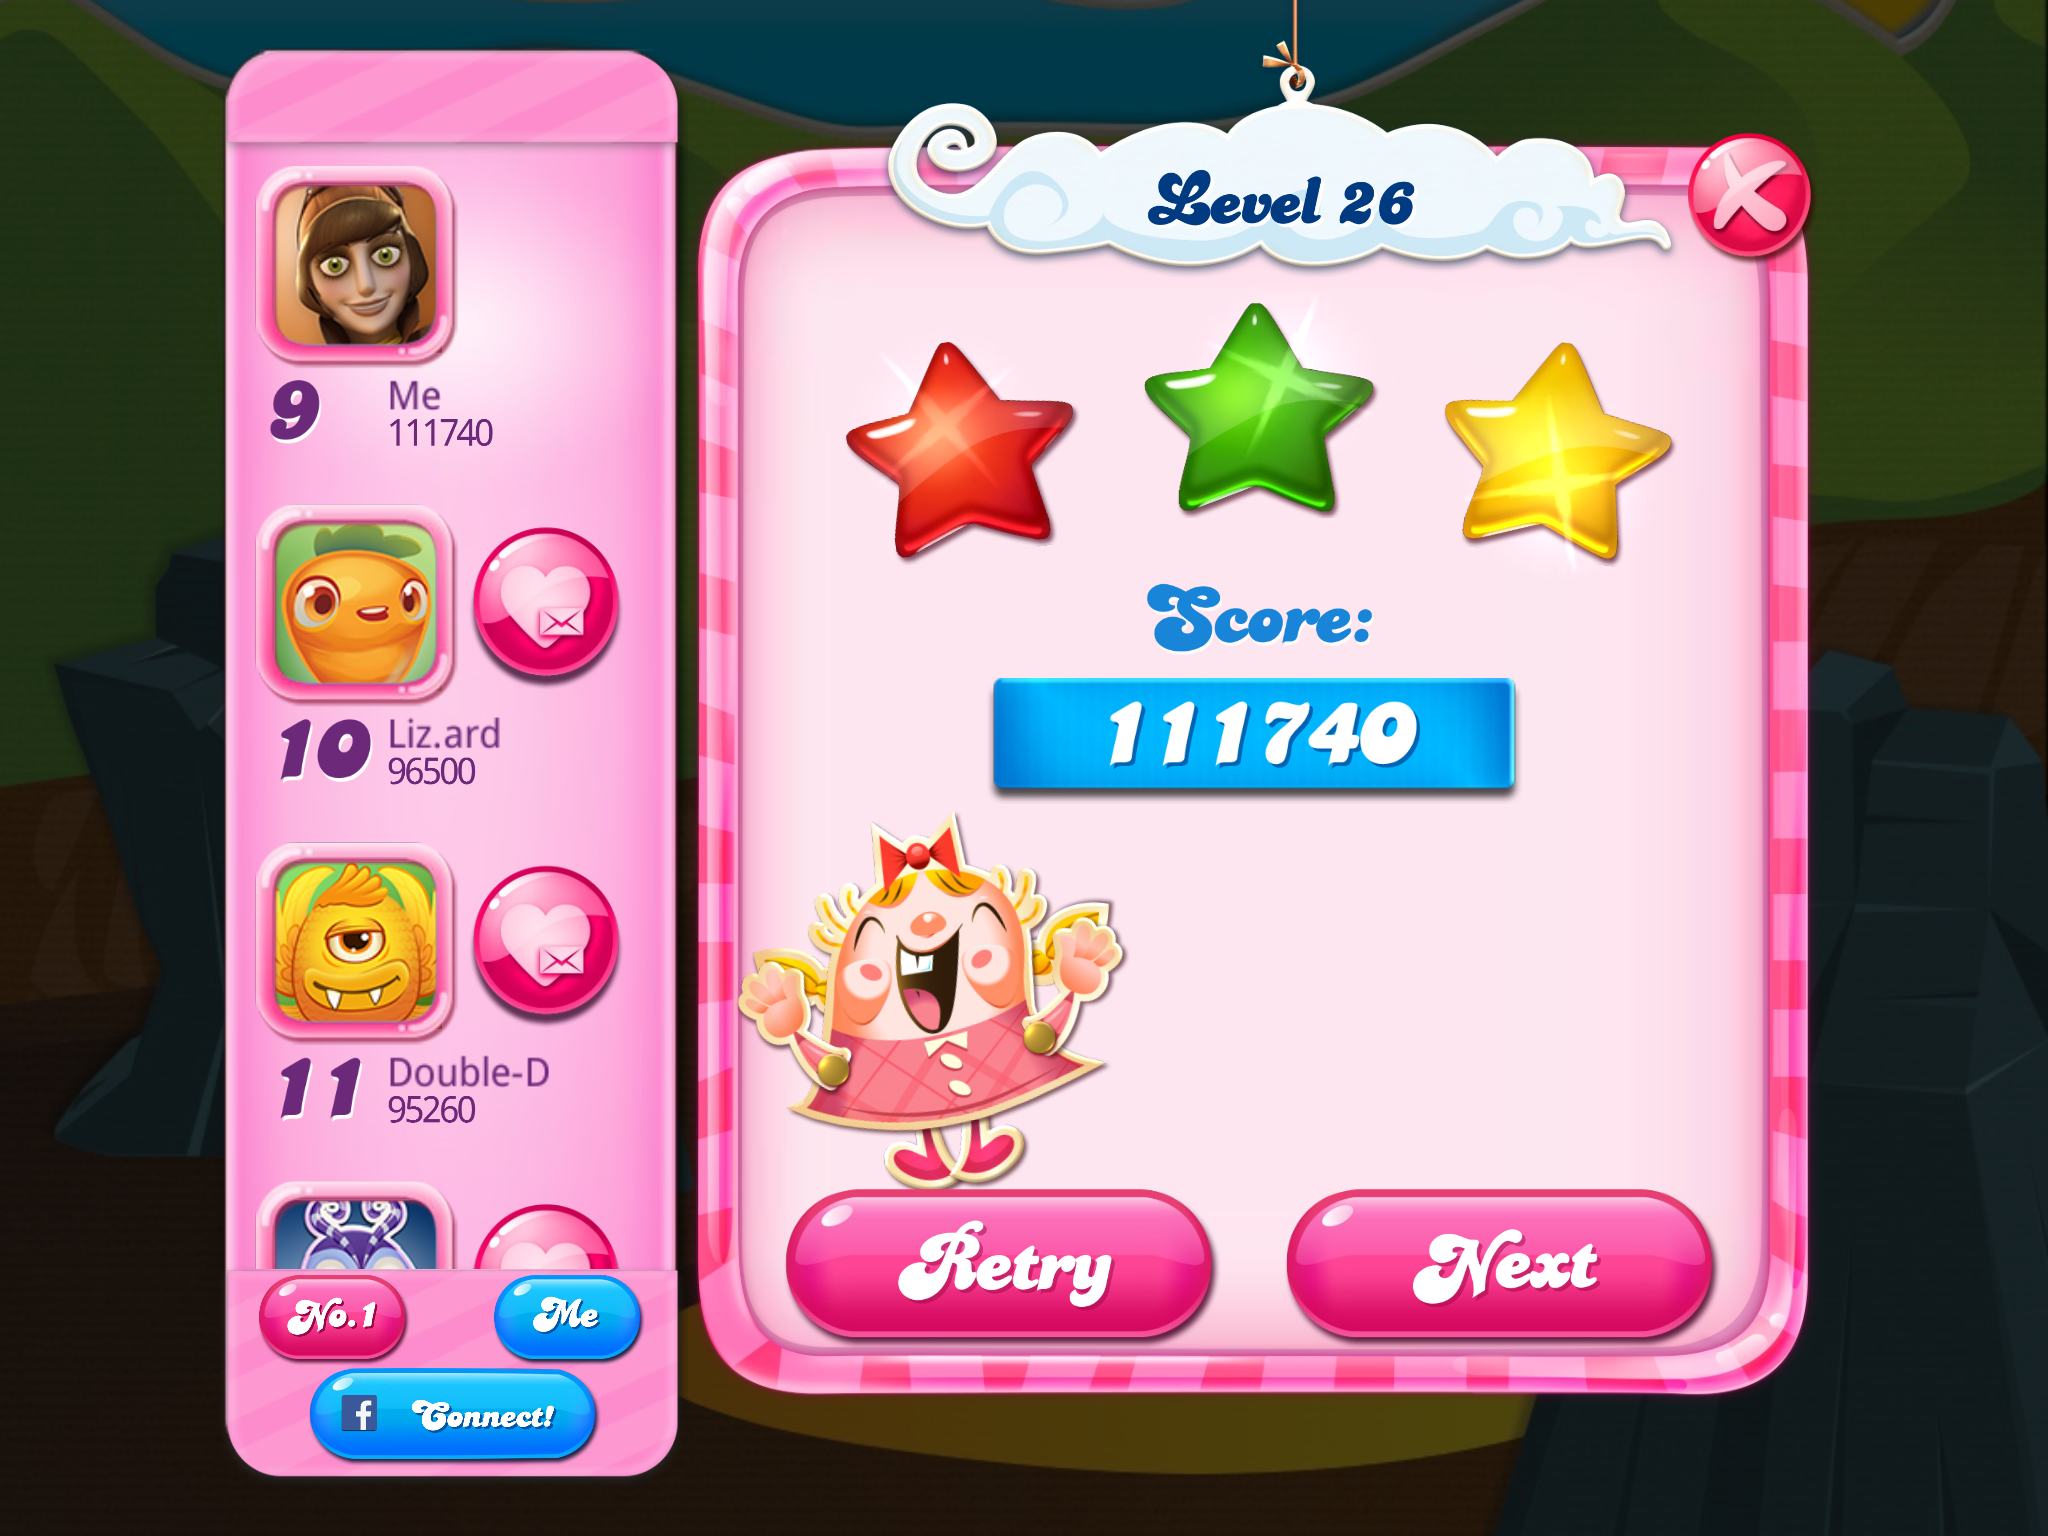 Candy Crush Saga: Level 026 111,740 points